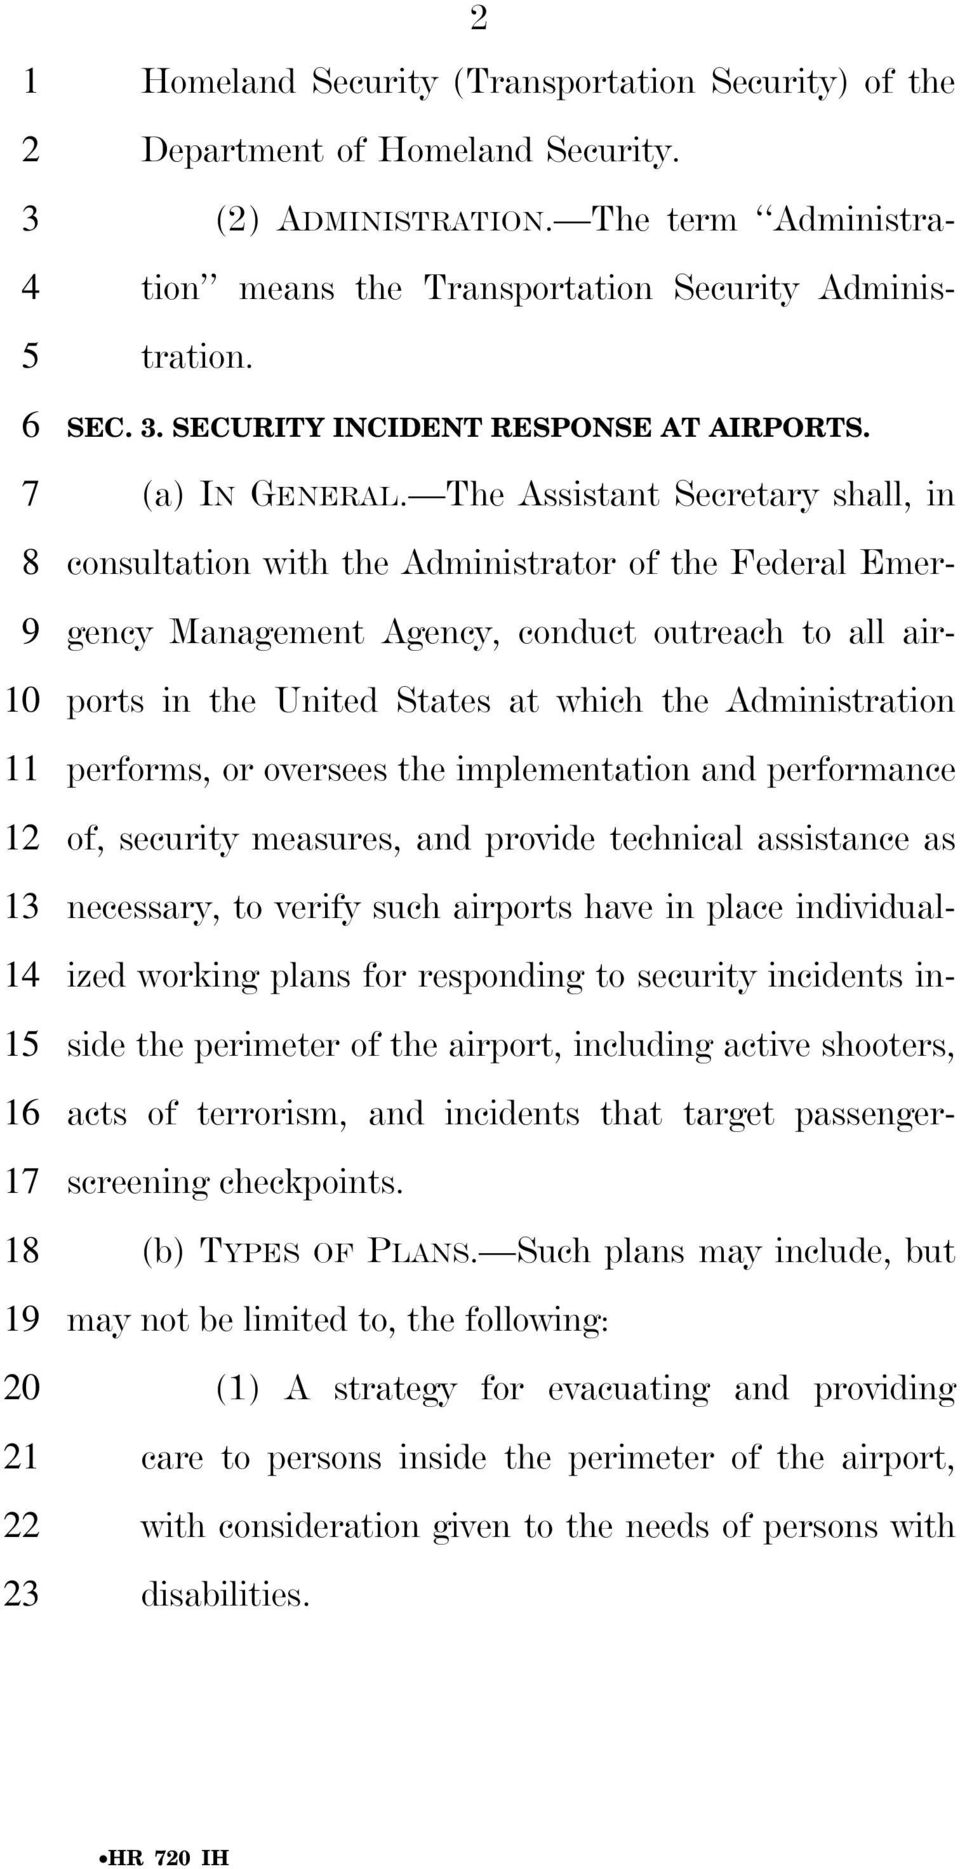 The Assistant Secretary shall, in consultation with the Administrator of the Federal Emergency Management Agency, conduct outreach to all airports in the United States at which the Administration